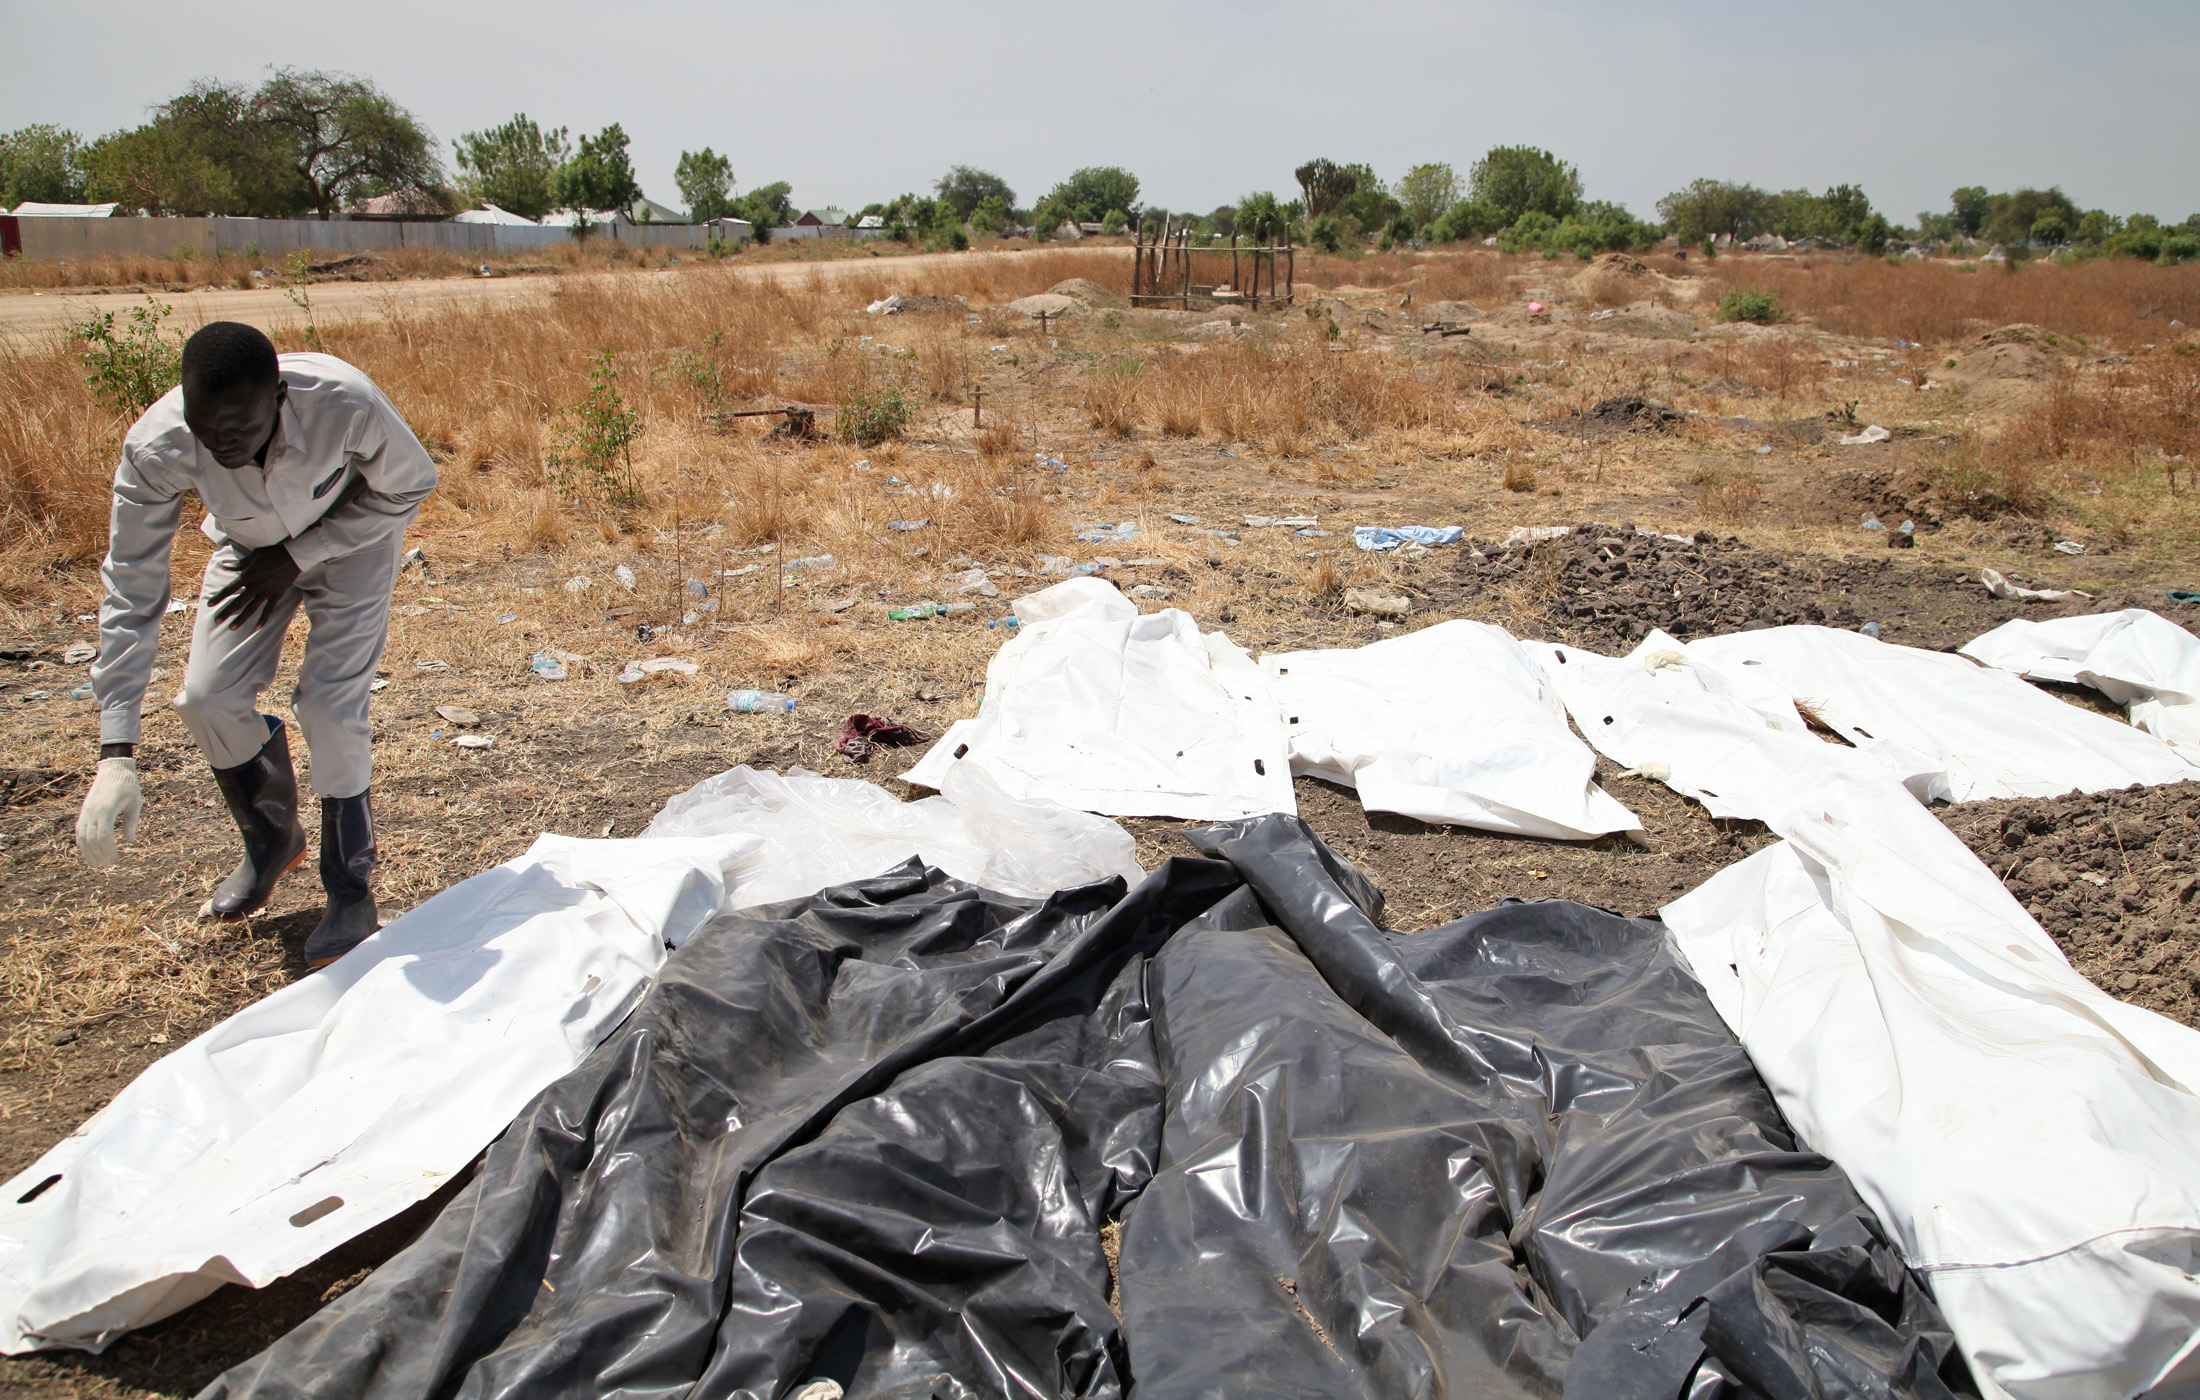 A volunteer in the South Sudanese town of Bor arranges corpses, victims of repeated clashes between government forces and rebels